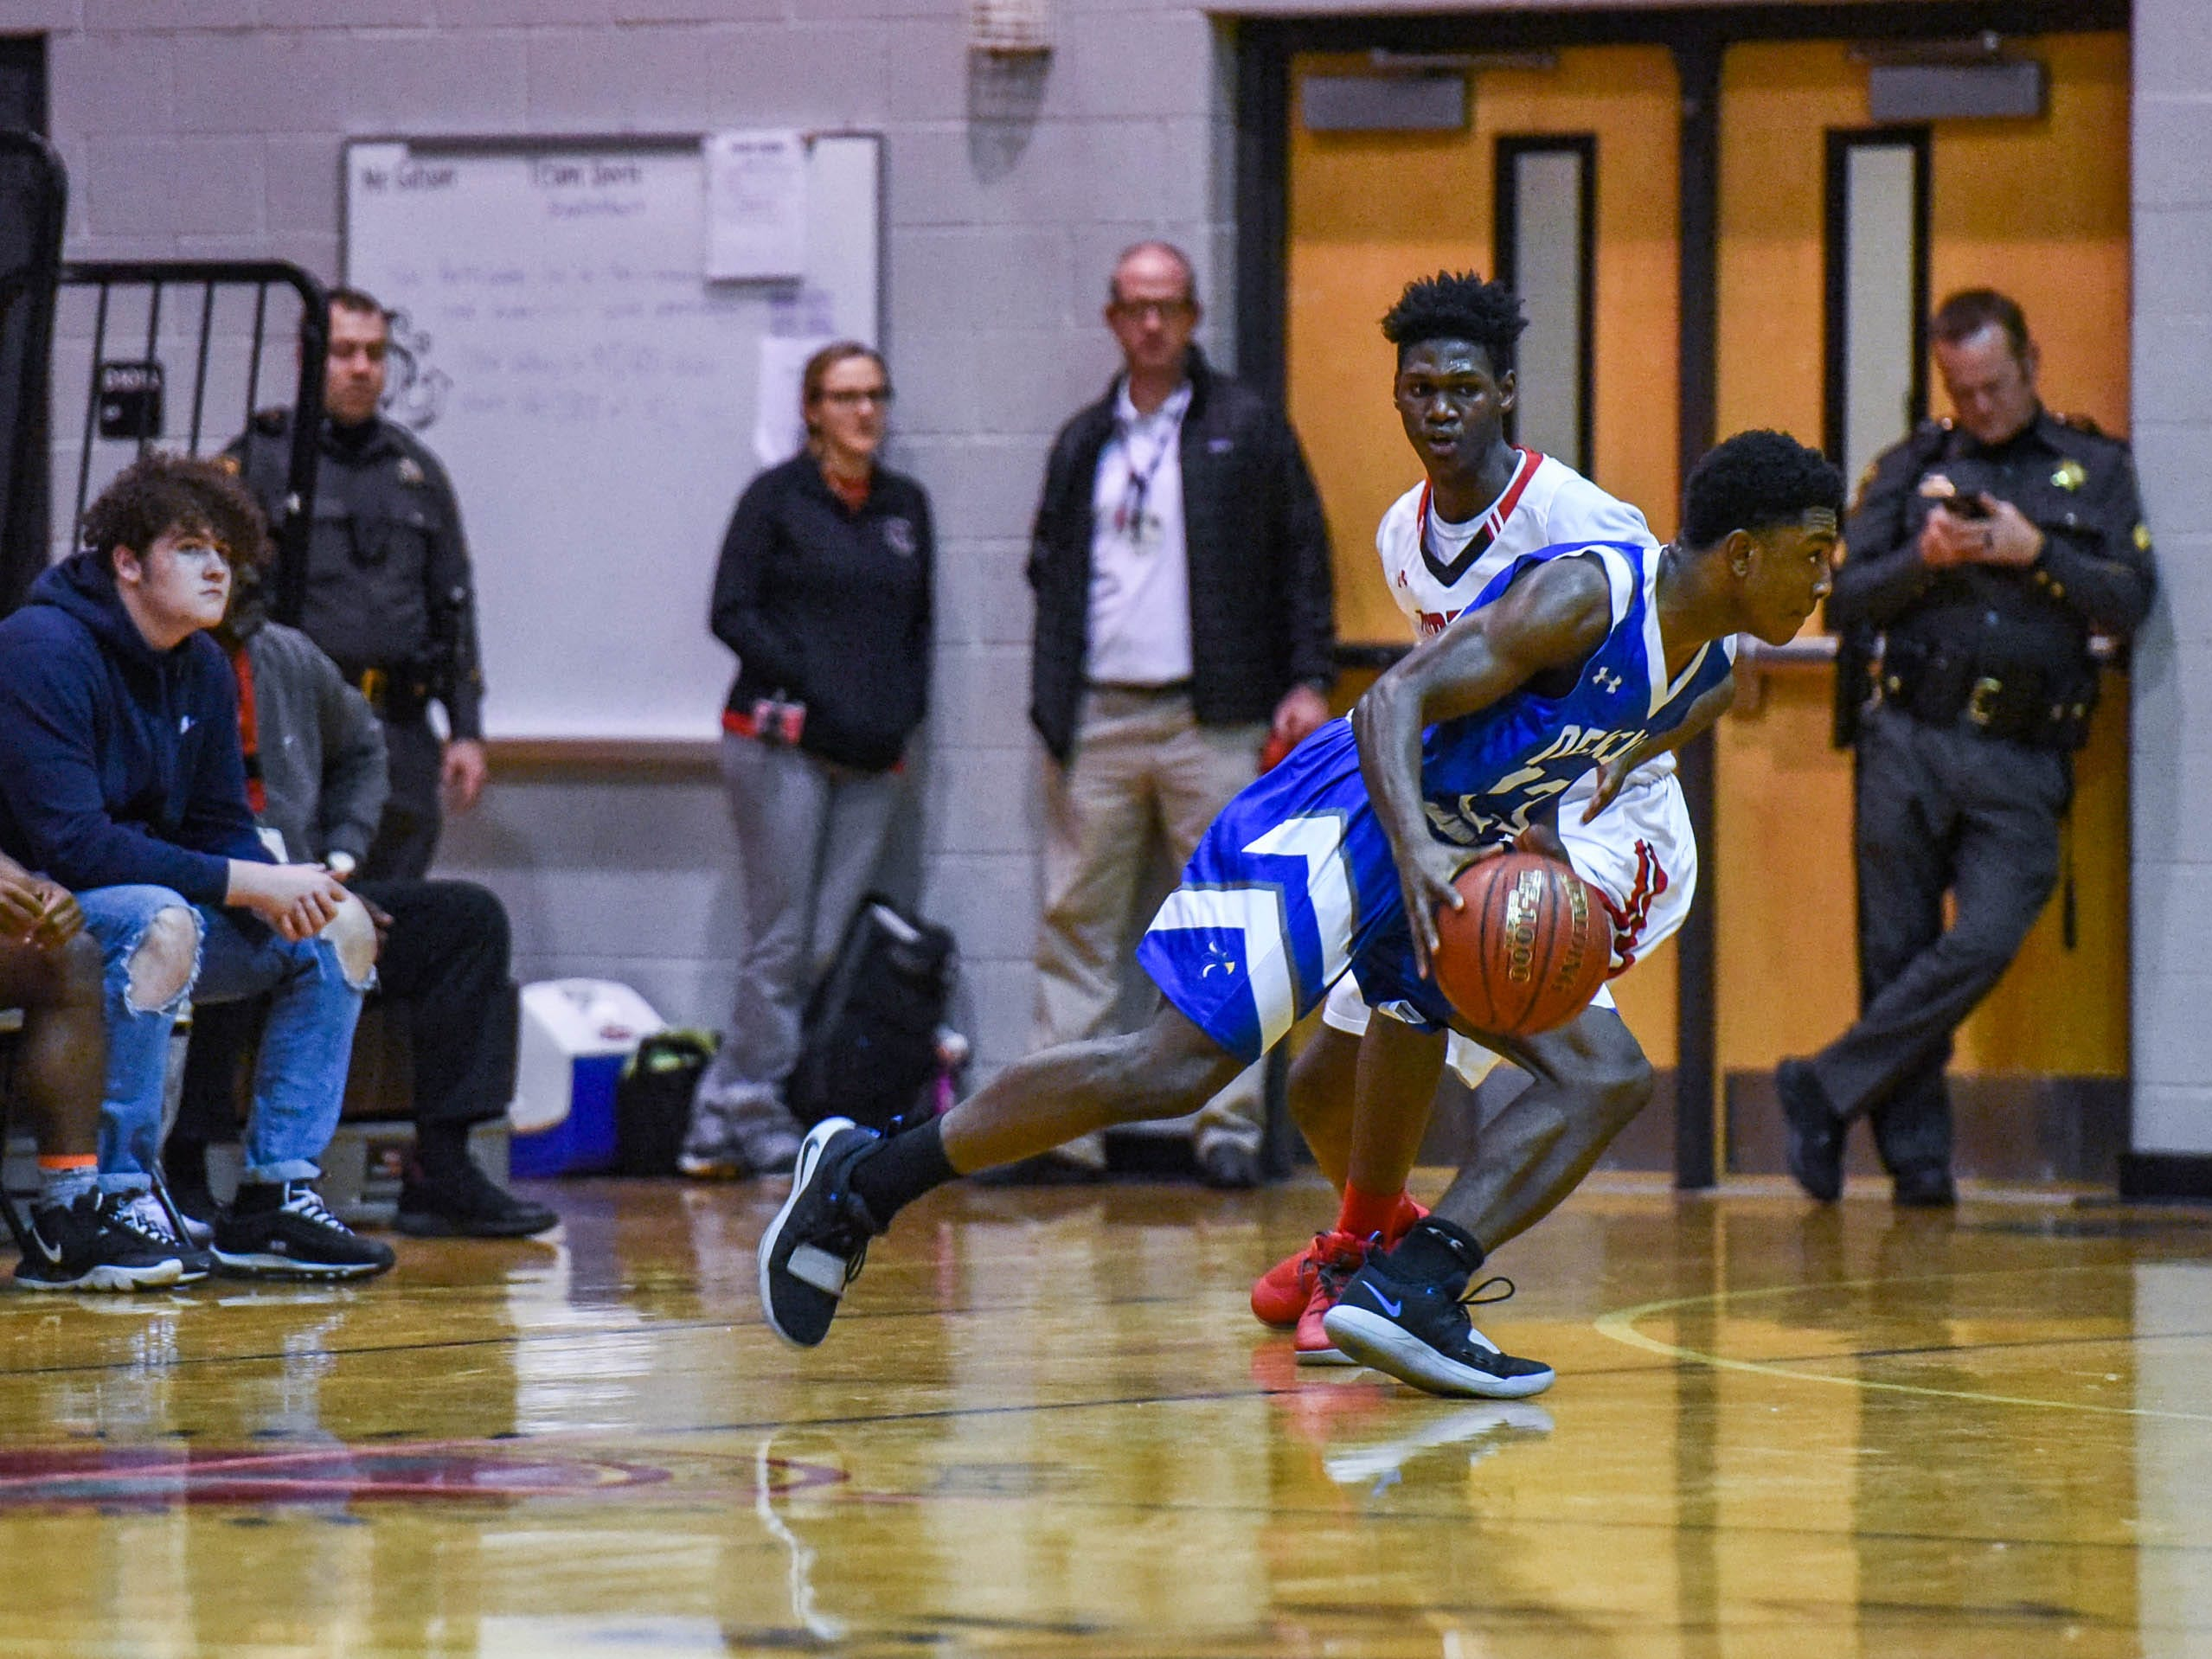 Decatur's London Drummond (23) moves the ball during a game against Bennett at Bennett High School in Salisbury on Thursday, Jan 3, 2018.